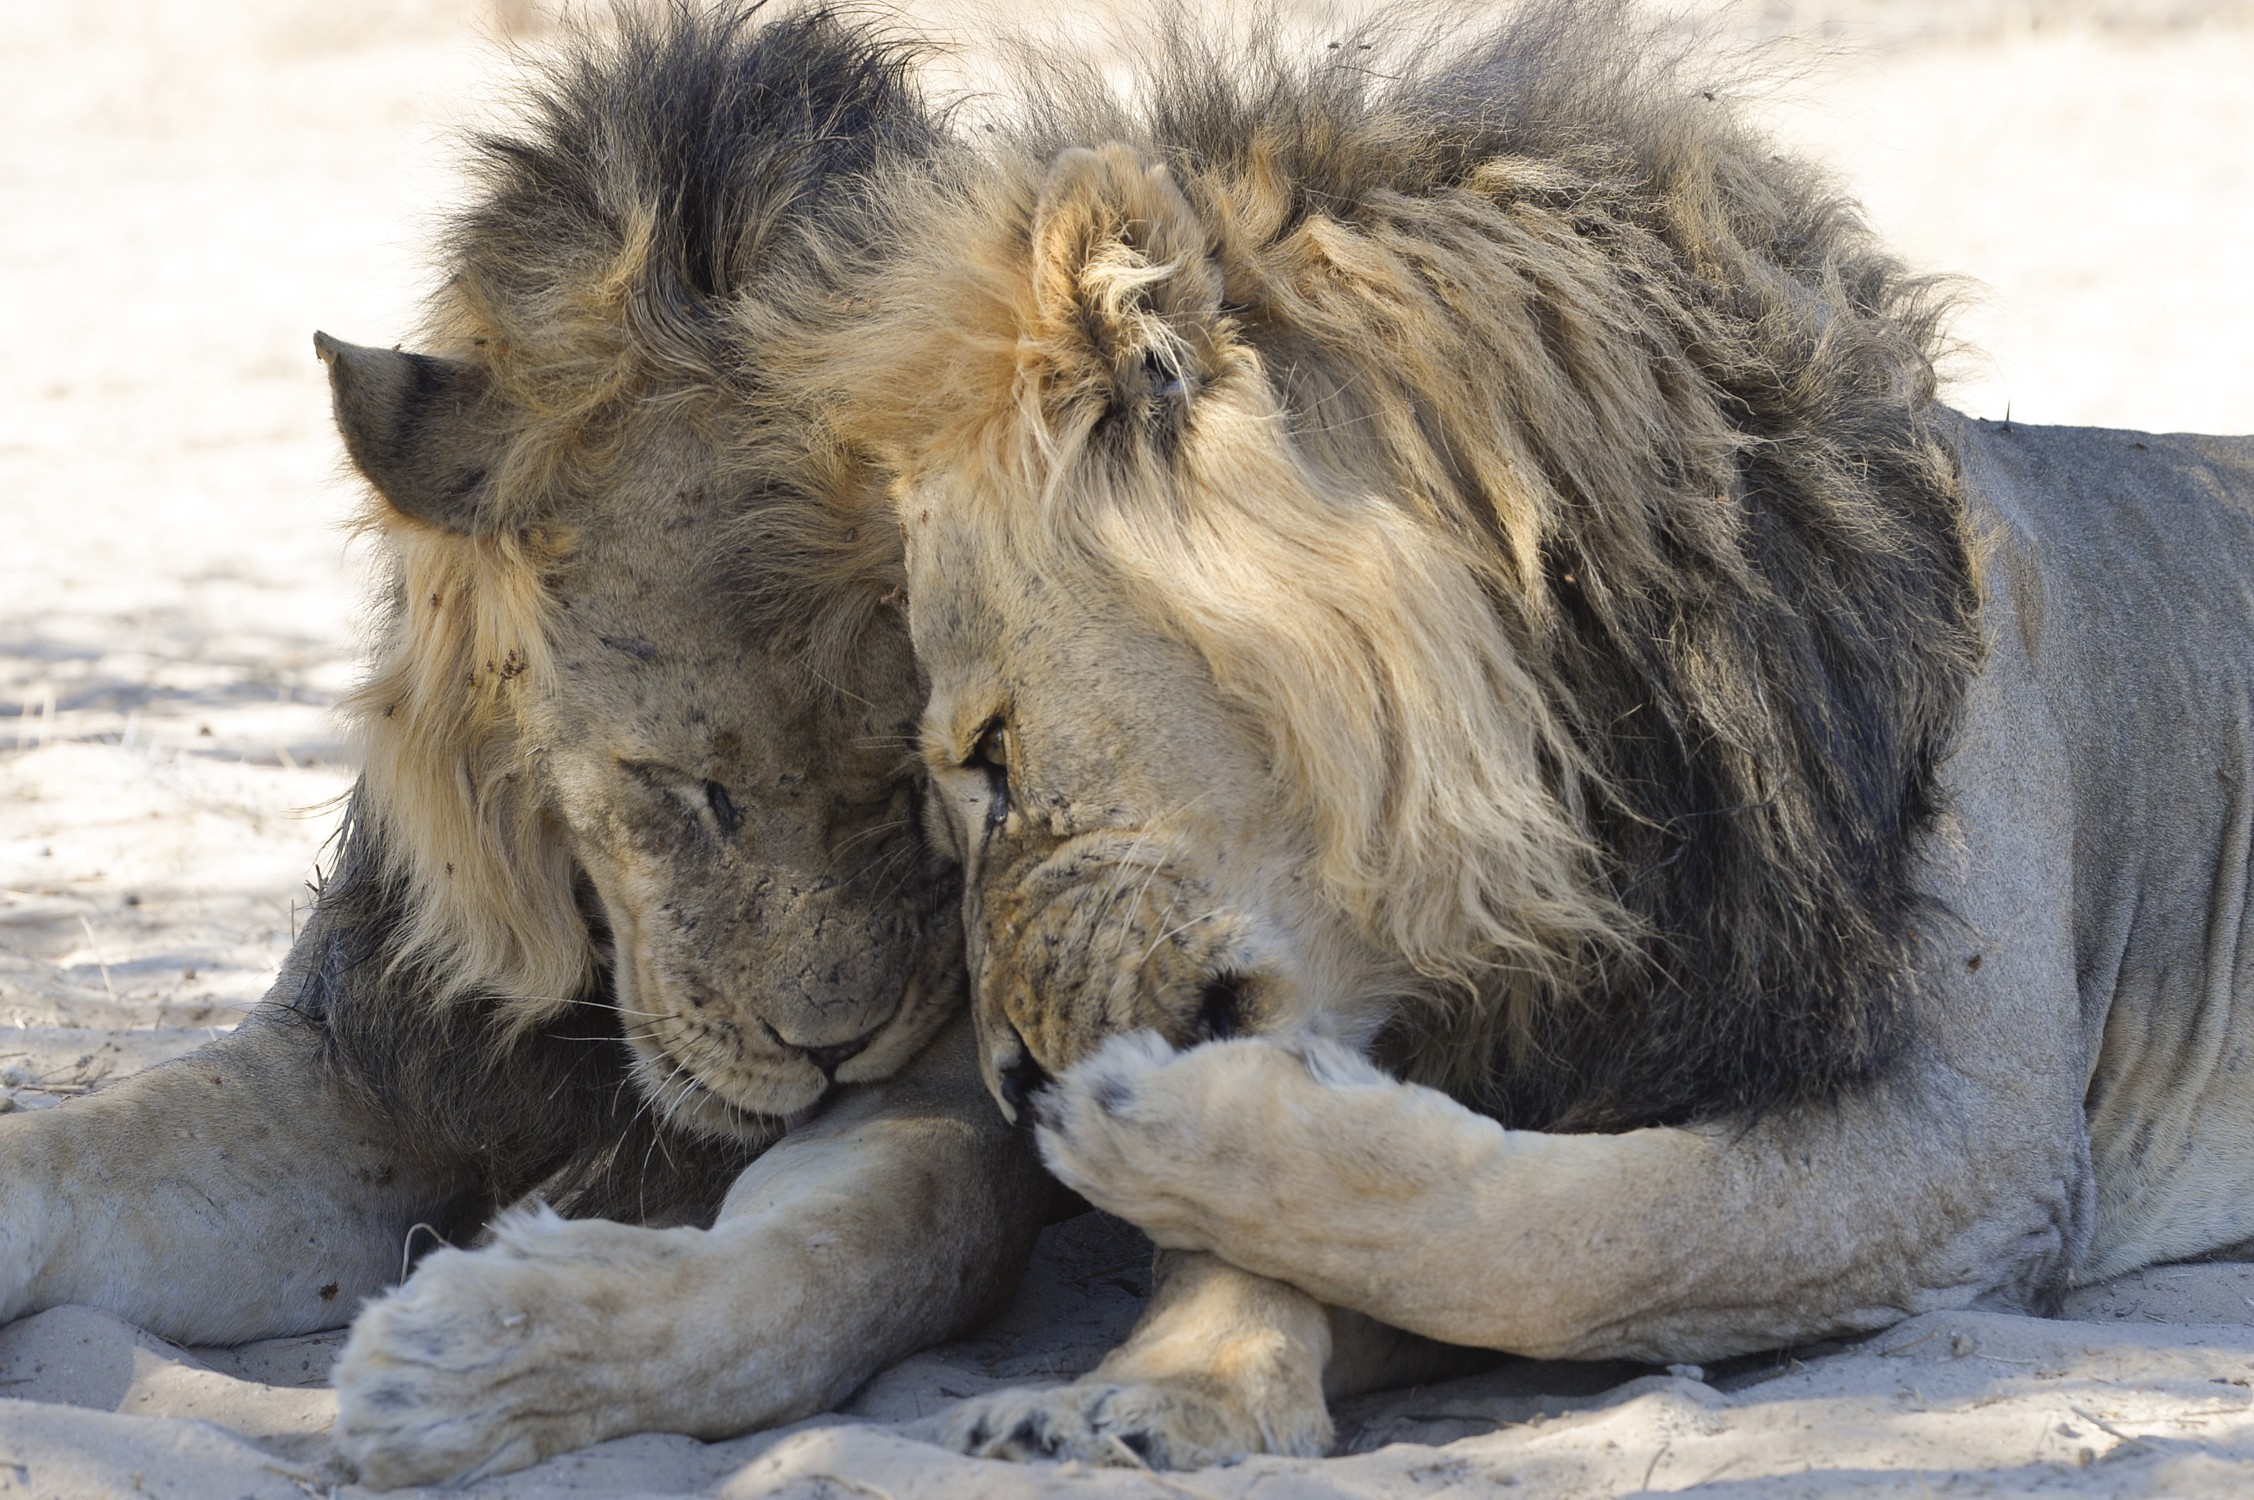 Two maned lions appear to be sharing a secret as one leans towards the other with a paw over his mouth